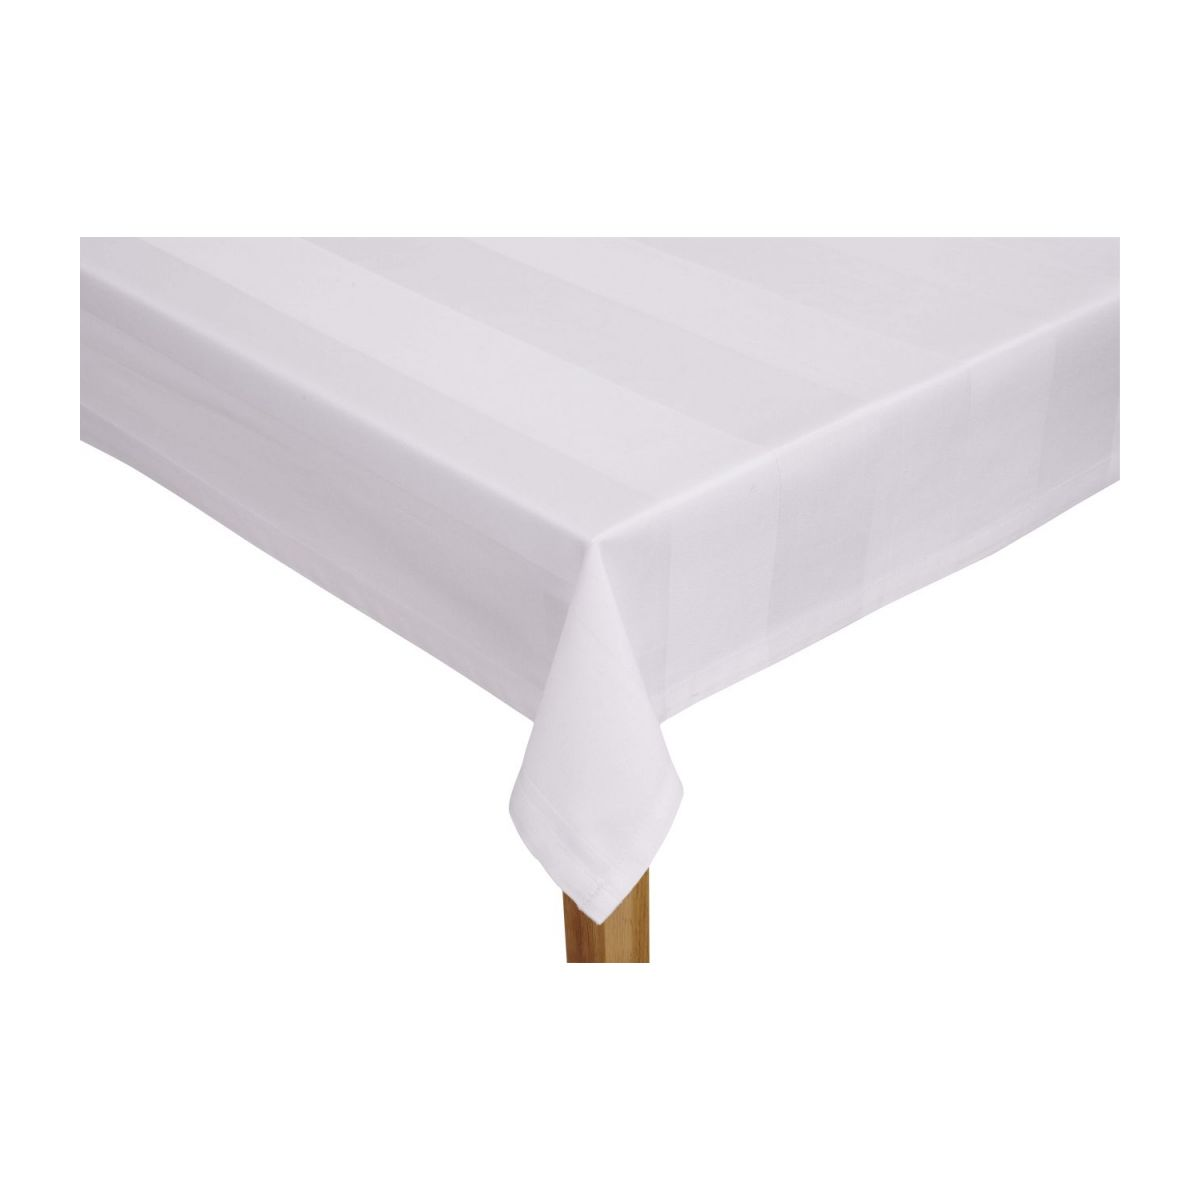 Nappe 270x180cm blanche n°4